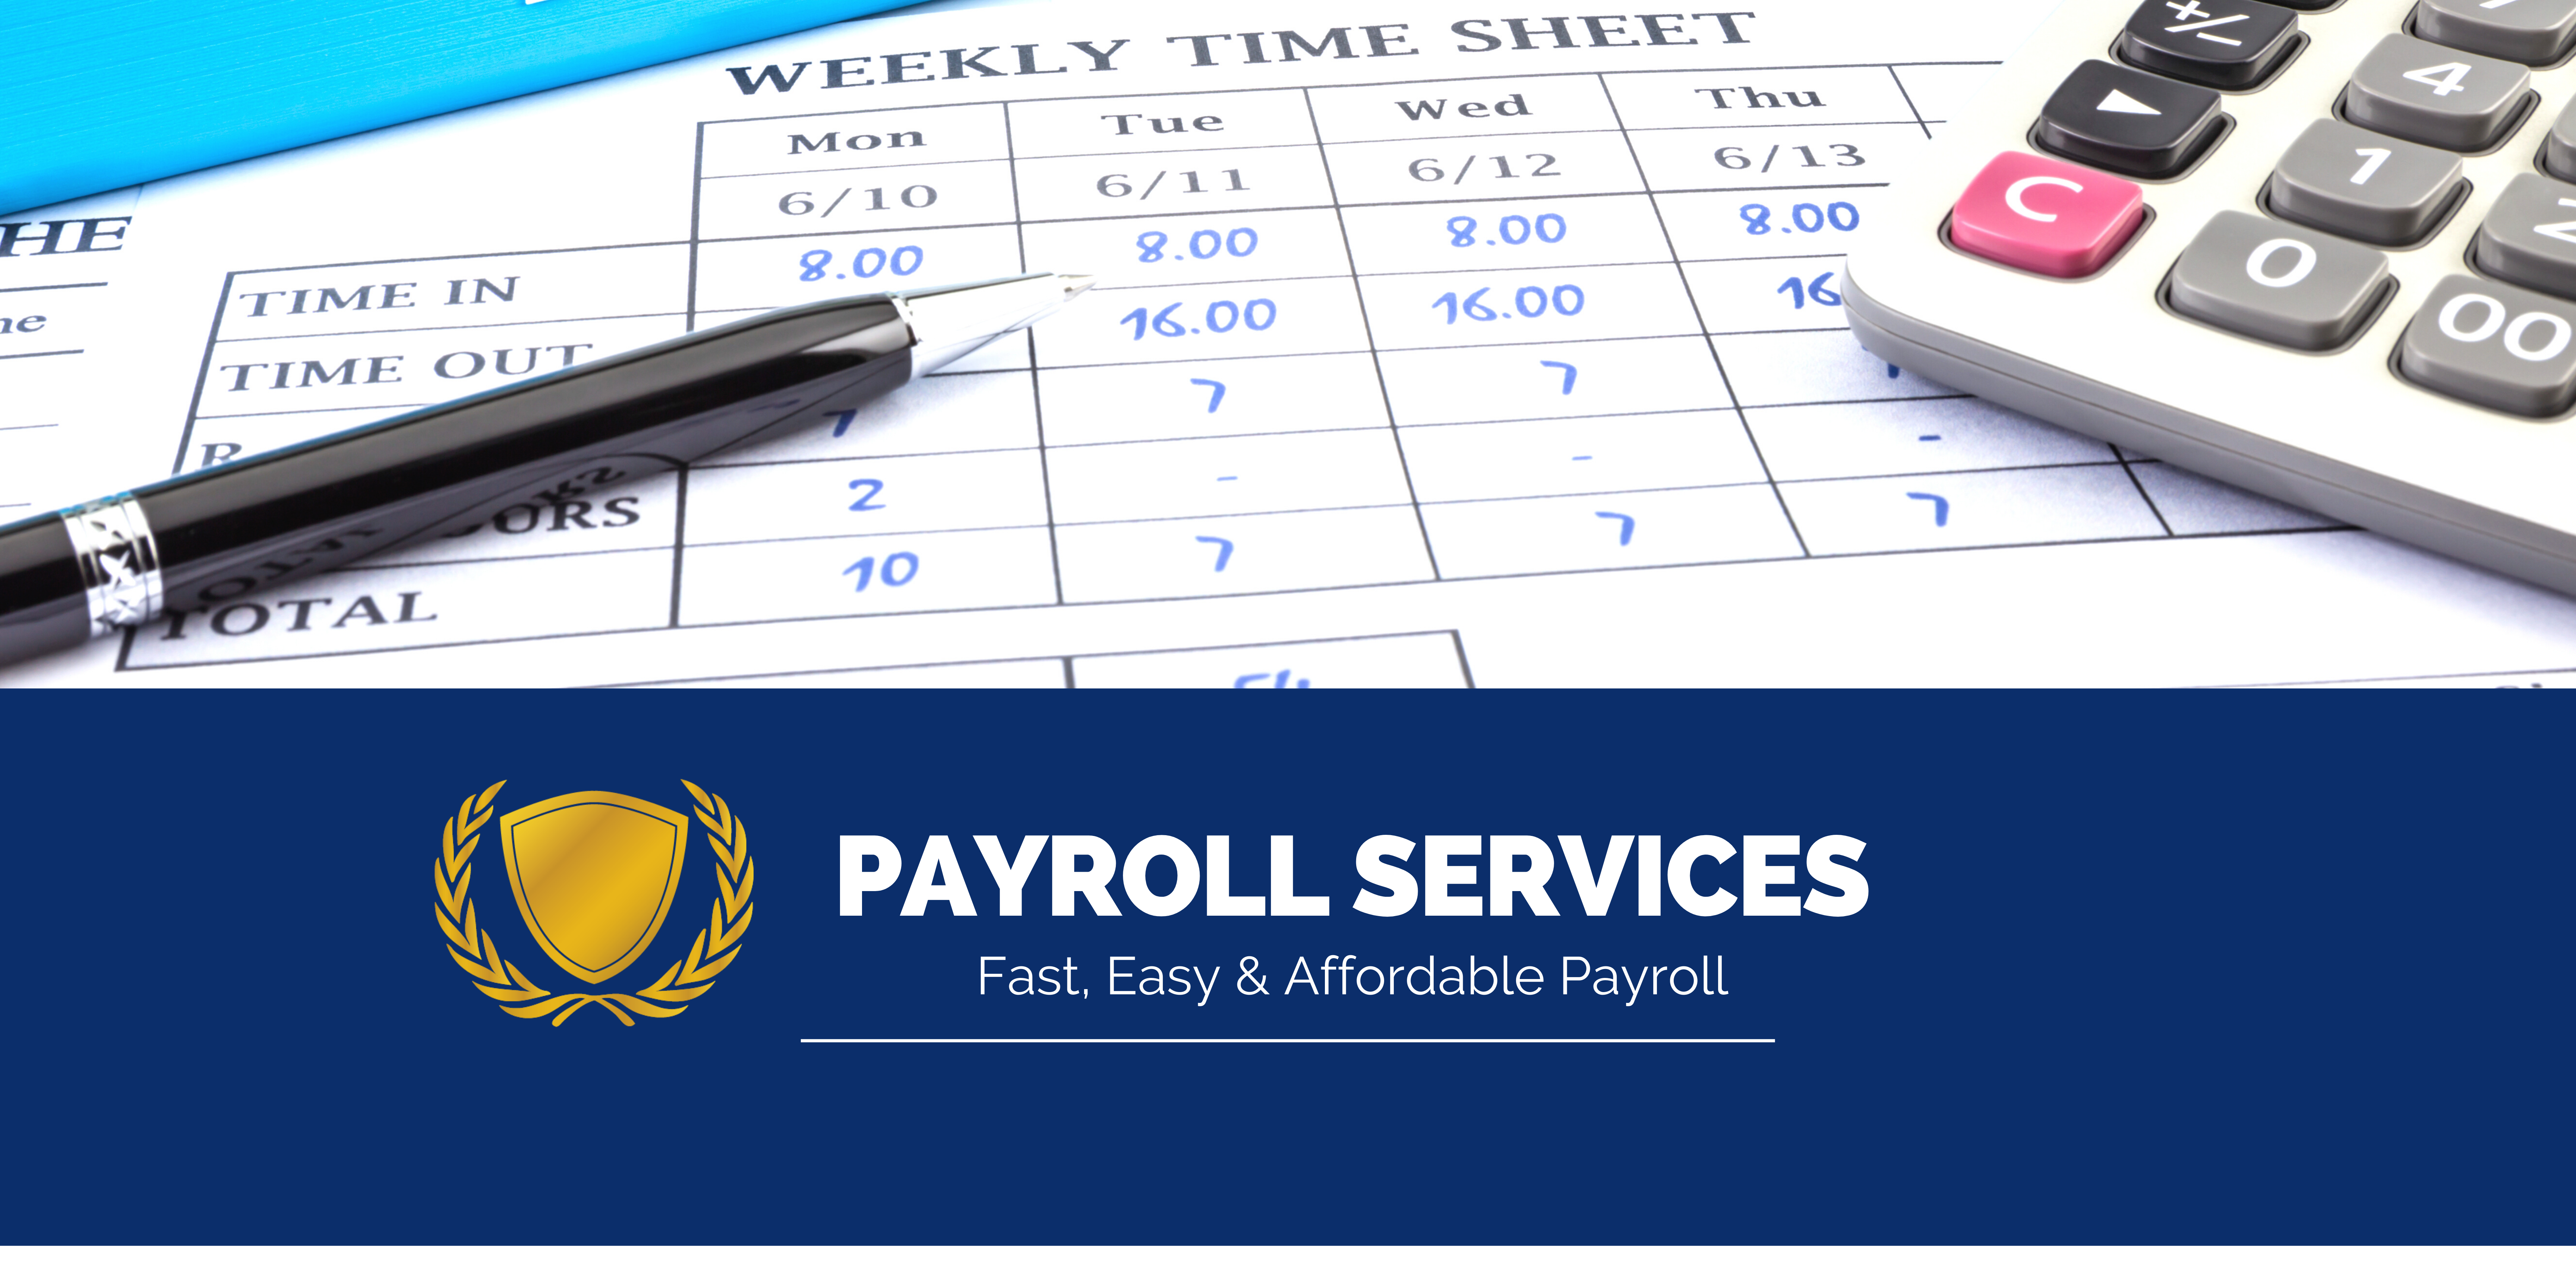 Payroll Services & Online Payroll Reports